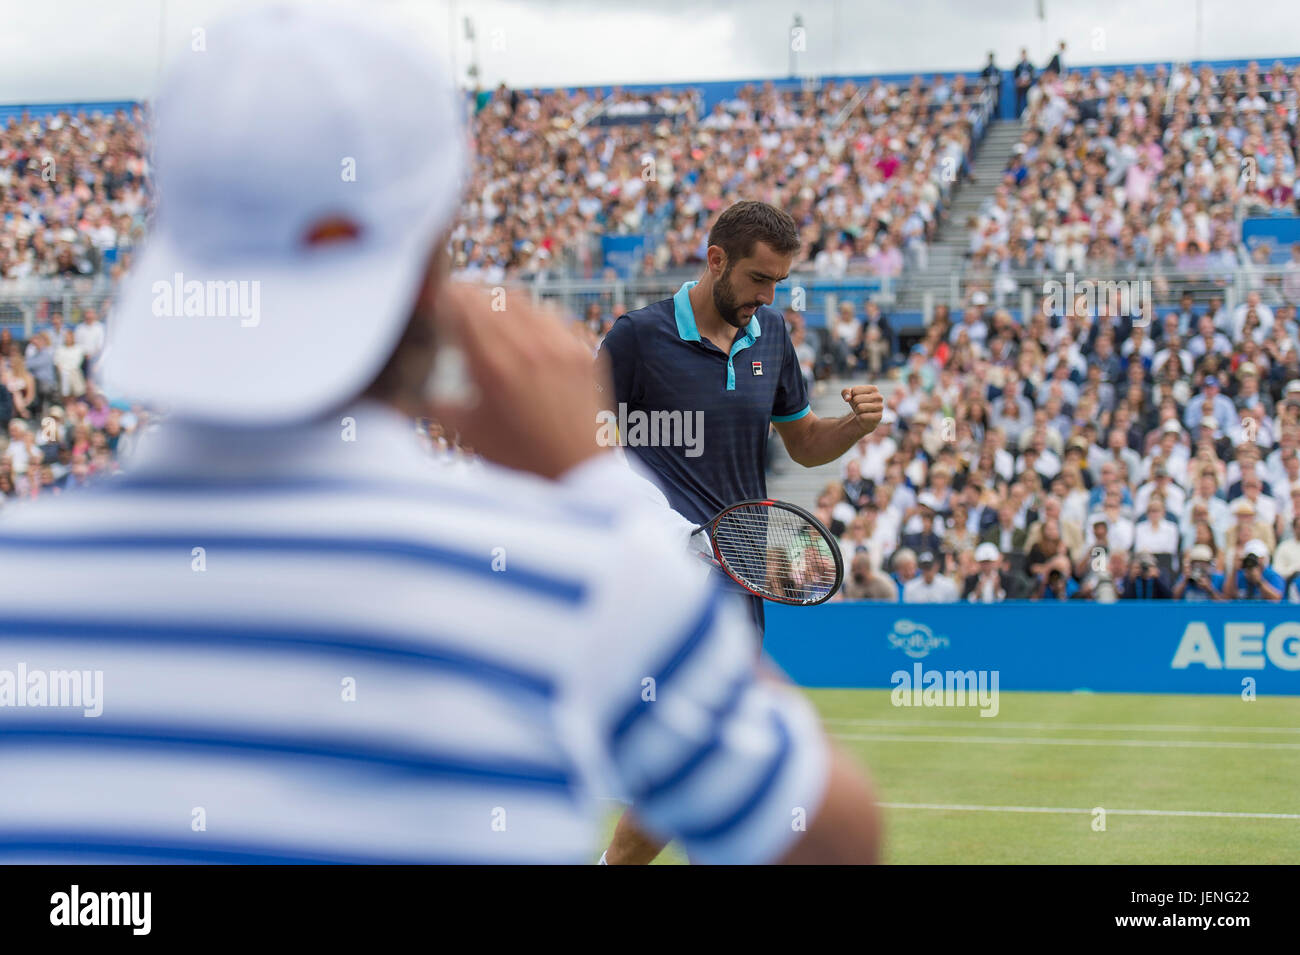 25th June 2017. Mens singles finals match at the 2017 Aegon Championships, The Queen's Club, London Stock Photo